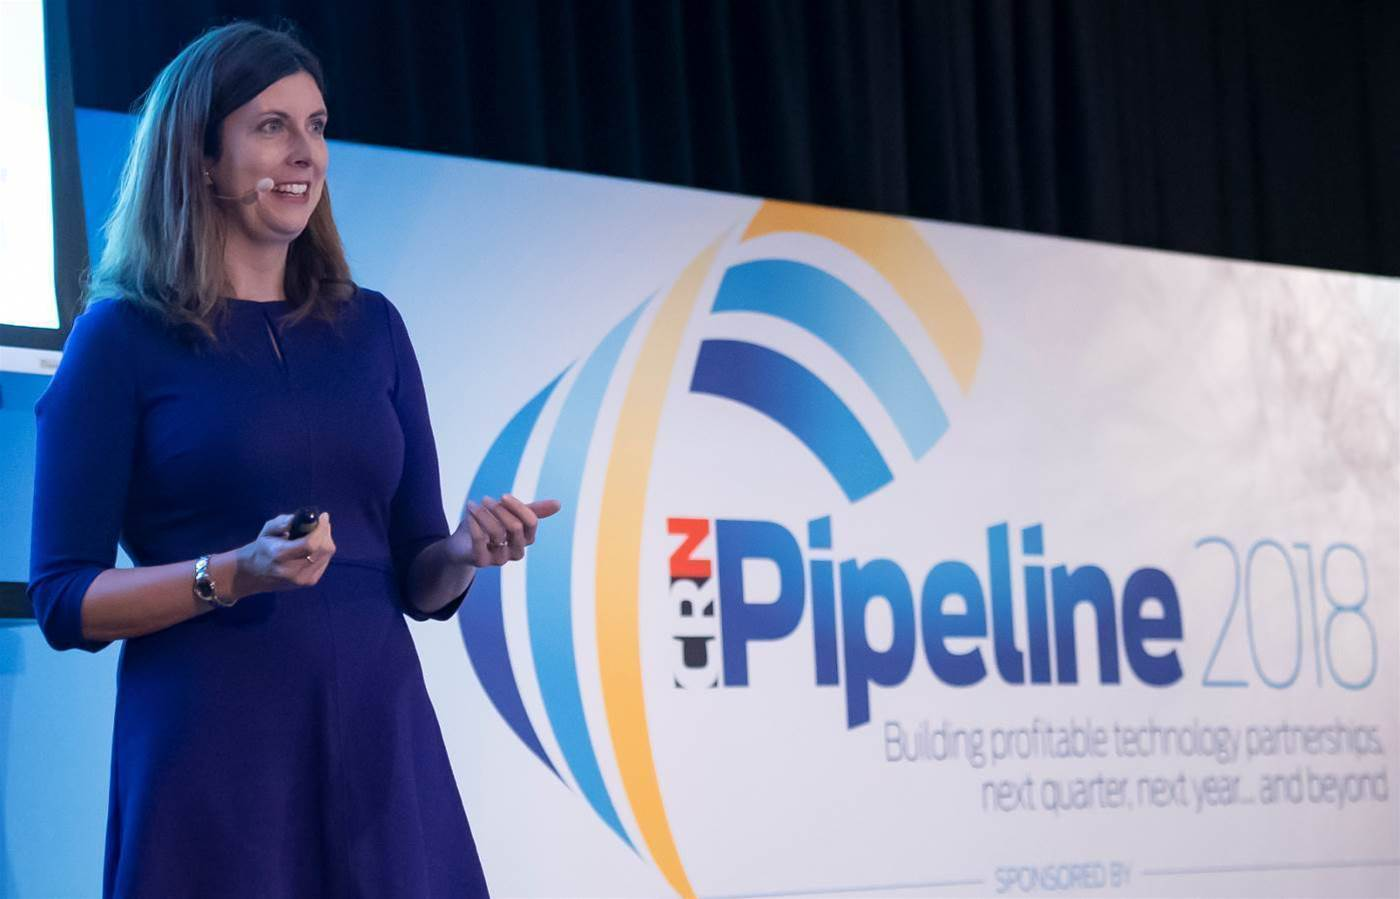 Channel leaders gather at CRN Pipeline Melbourne